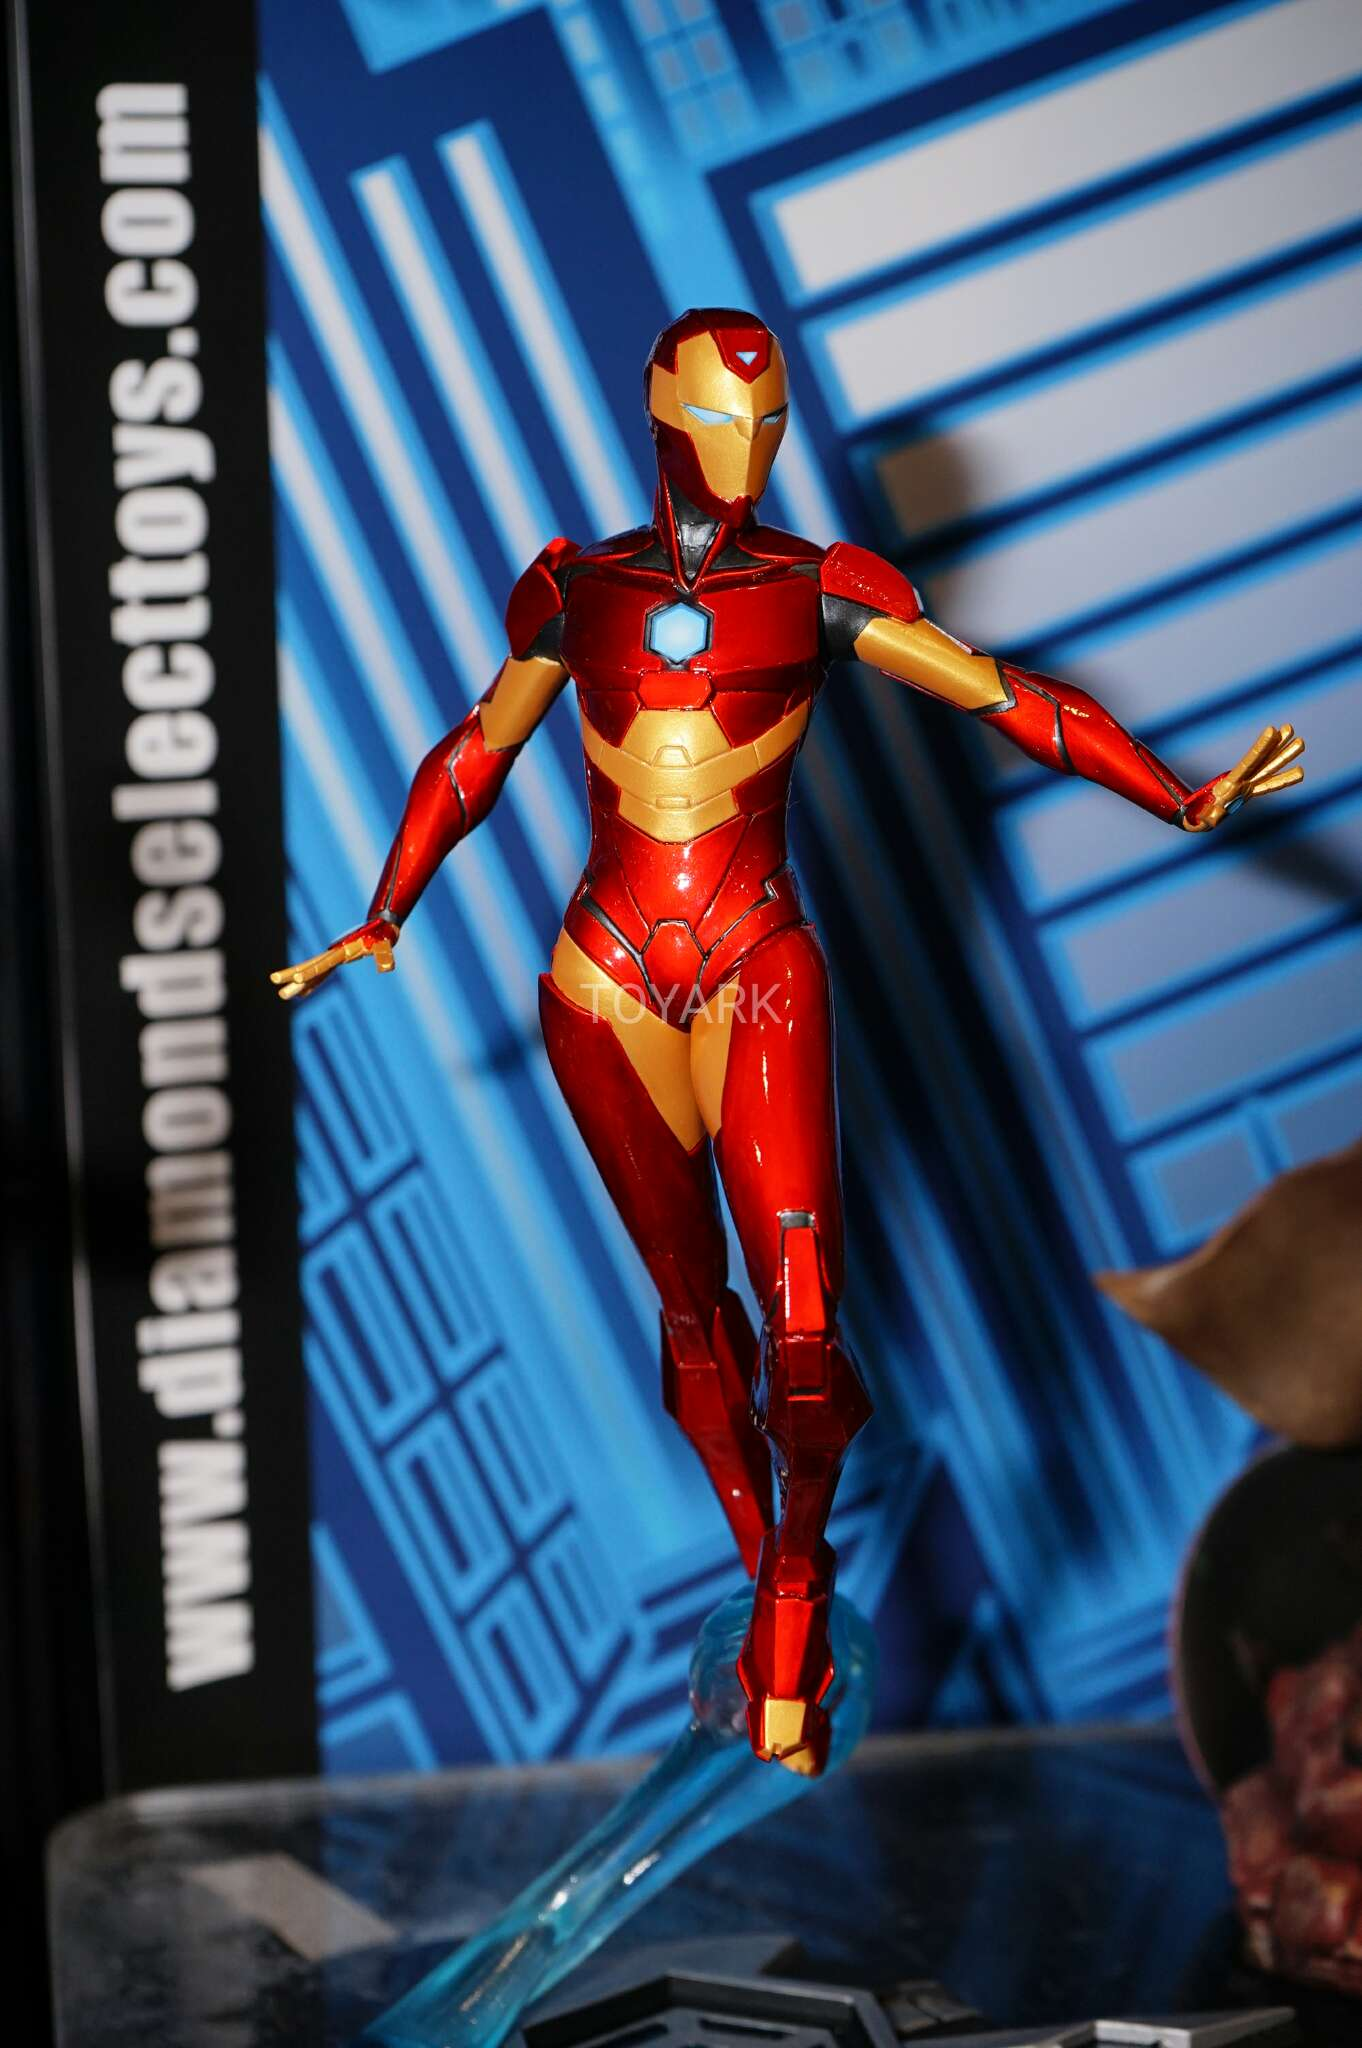 Toy Fair 2017: As melhores fotos do evento - Blog Farofeiros - Diamond Select - Iron Heart - Riri Wiliams